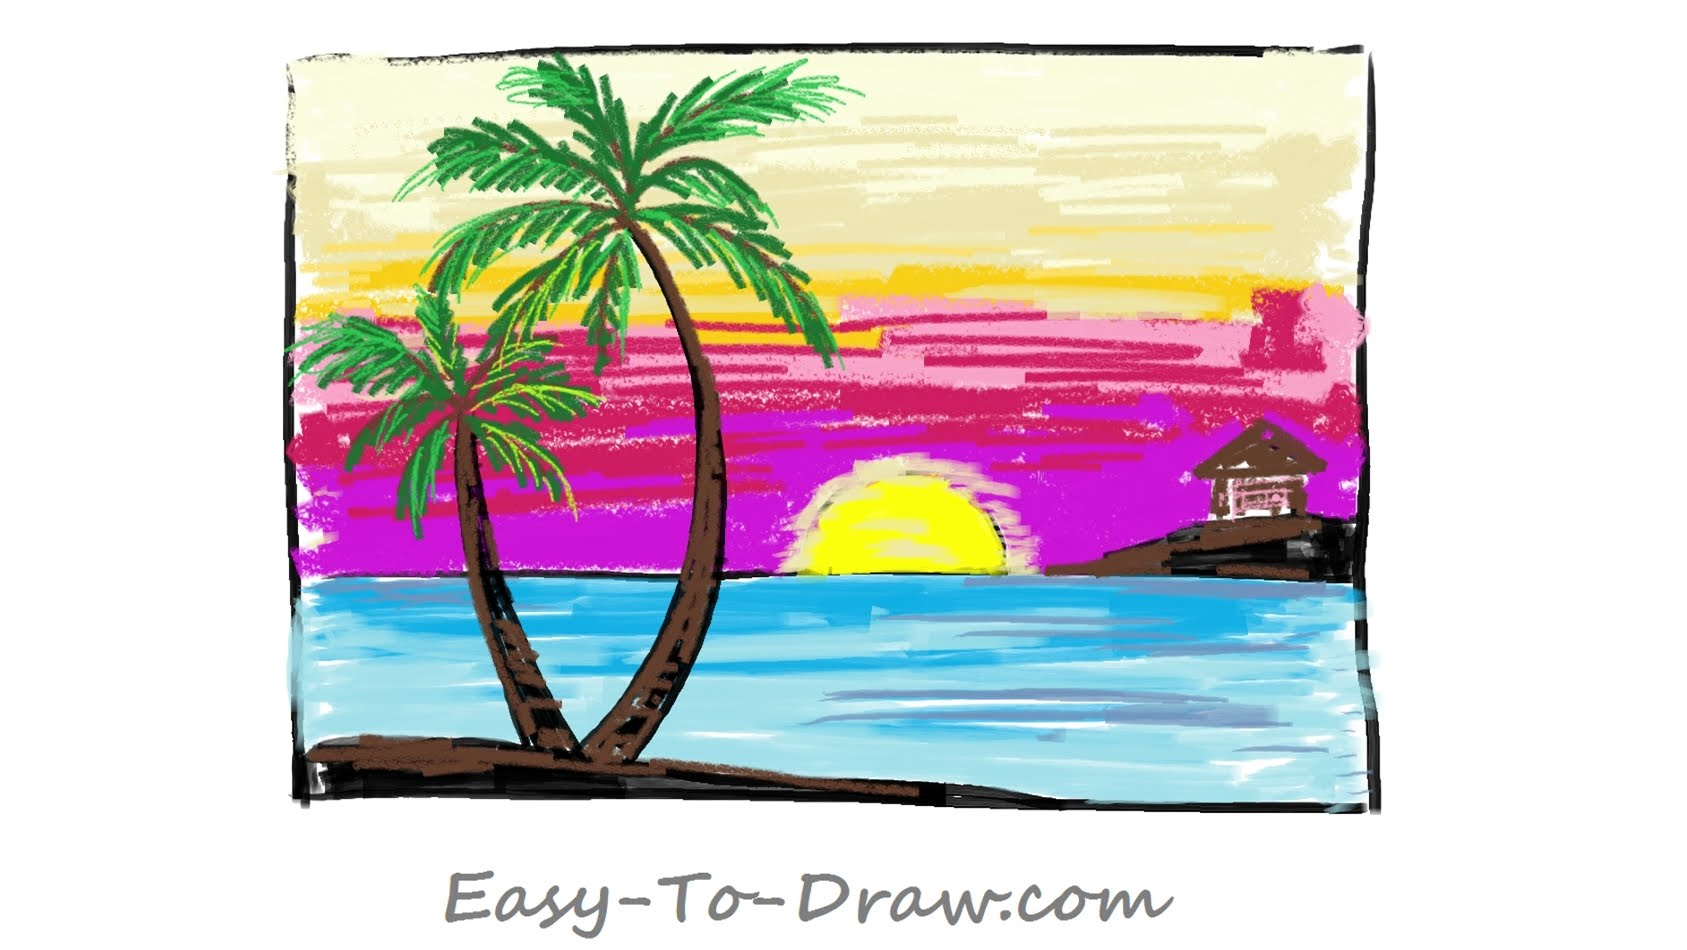 Drawn scenery rising sun Cartoon step with for a